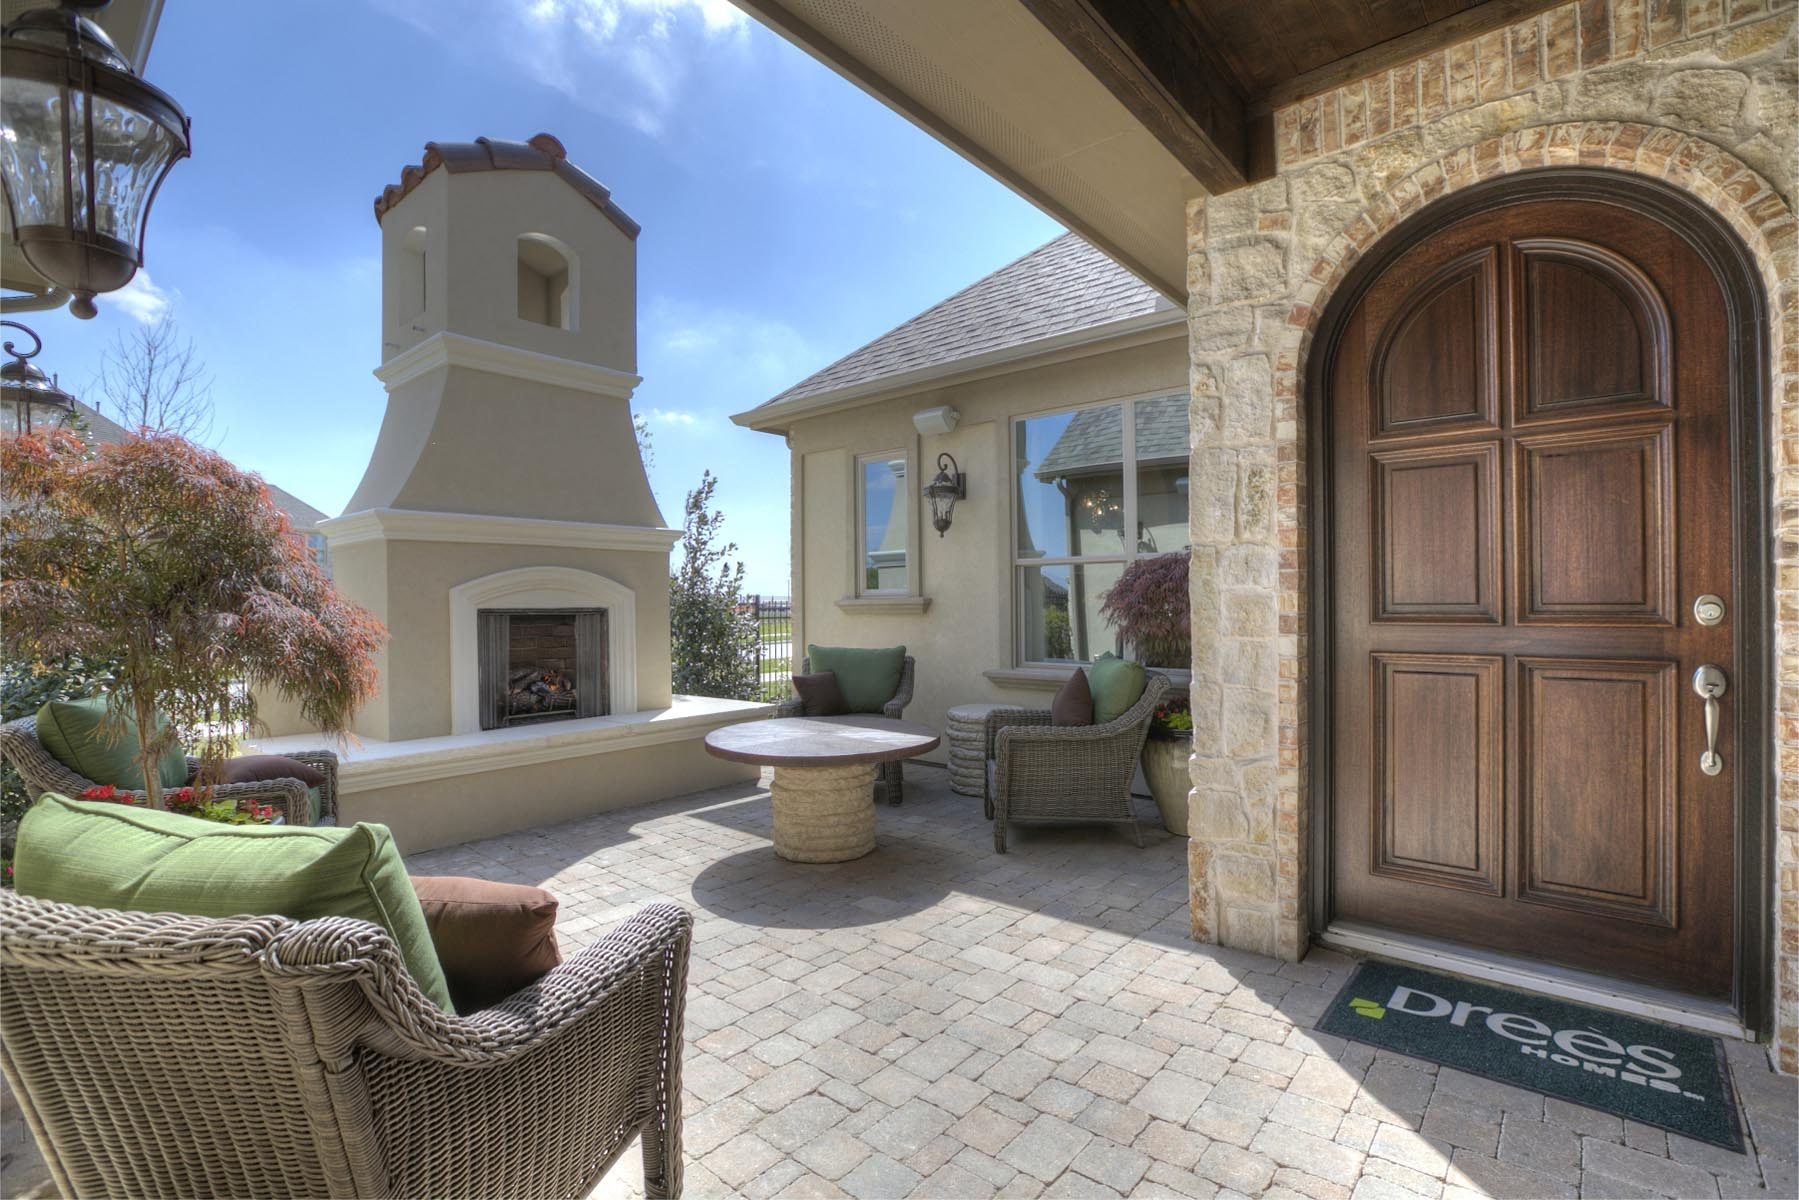 drees homes for sale dallas fort worth tx drees home with backyard bbq